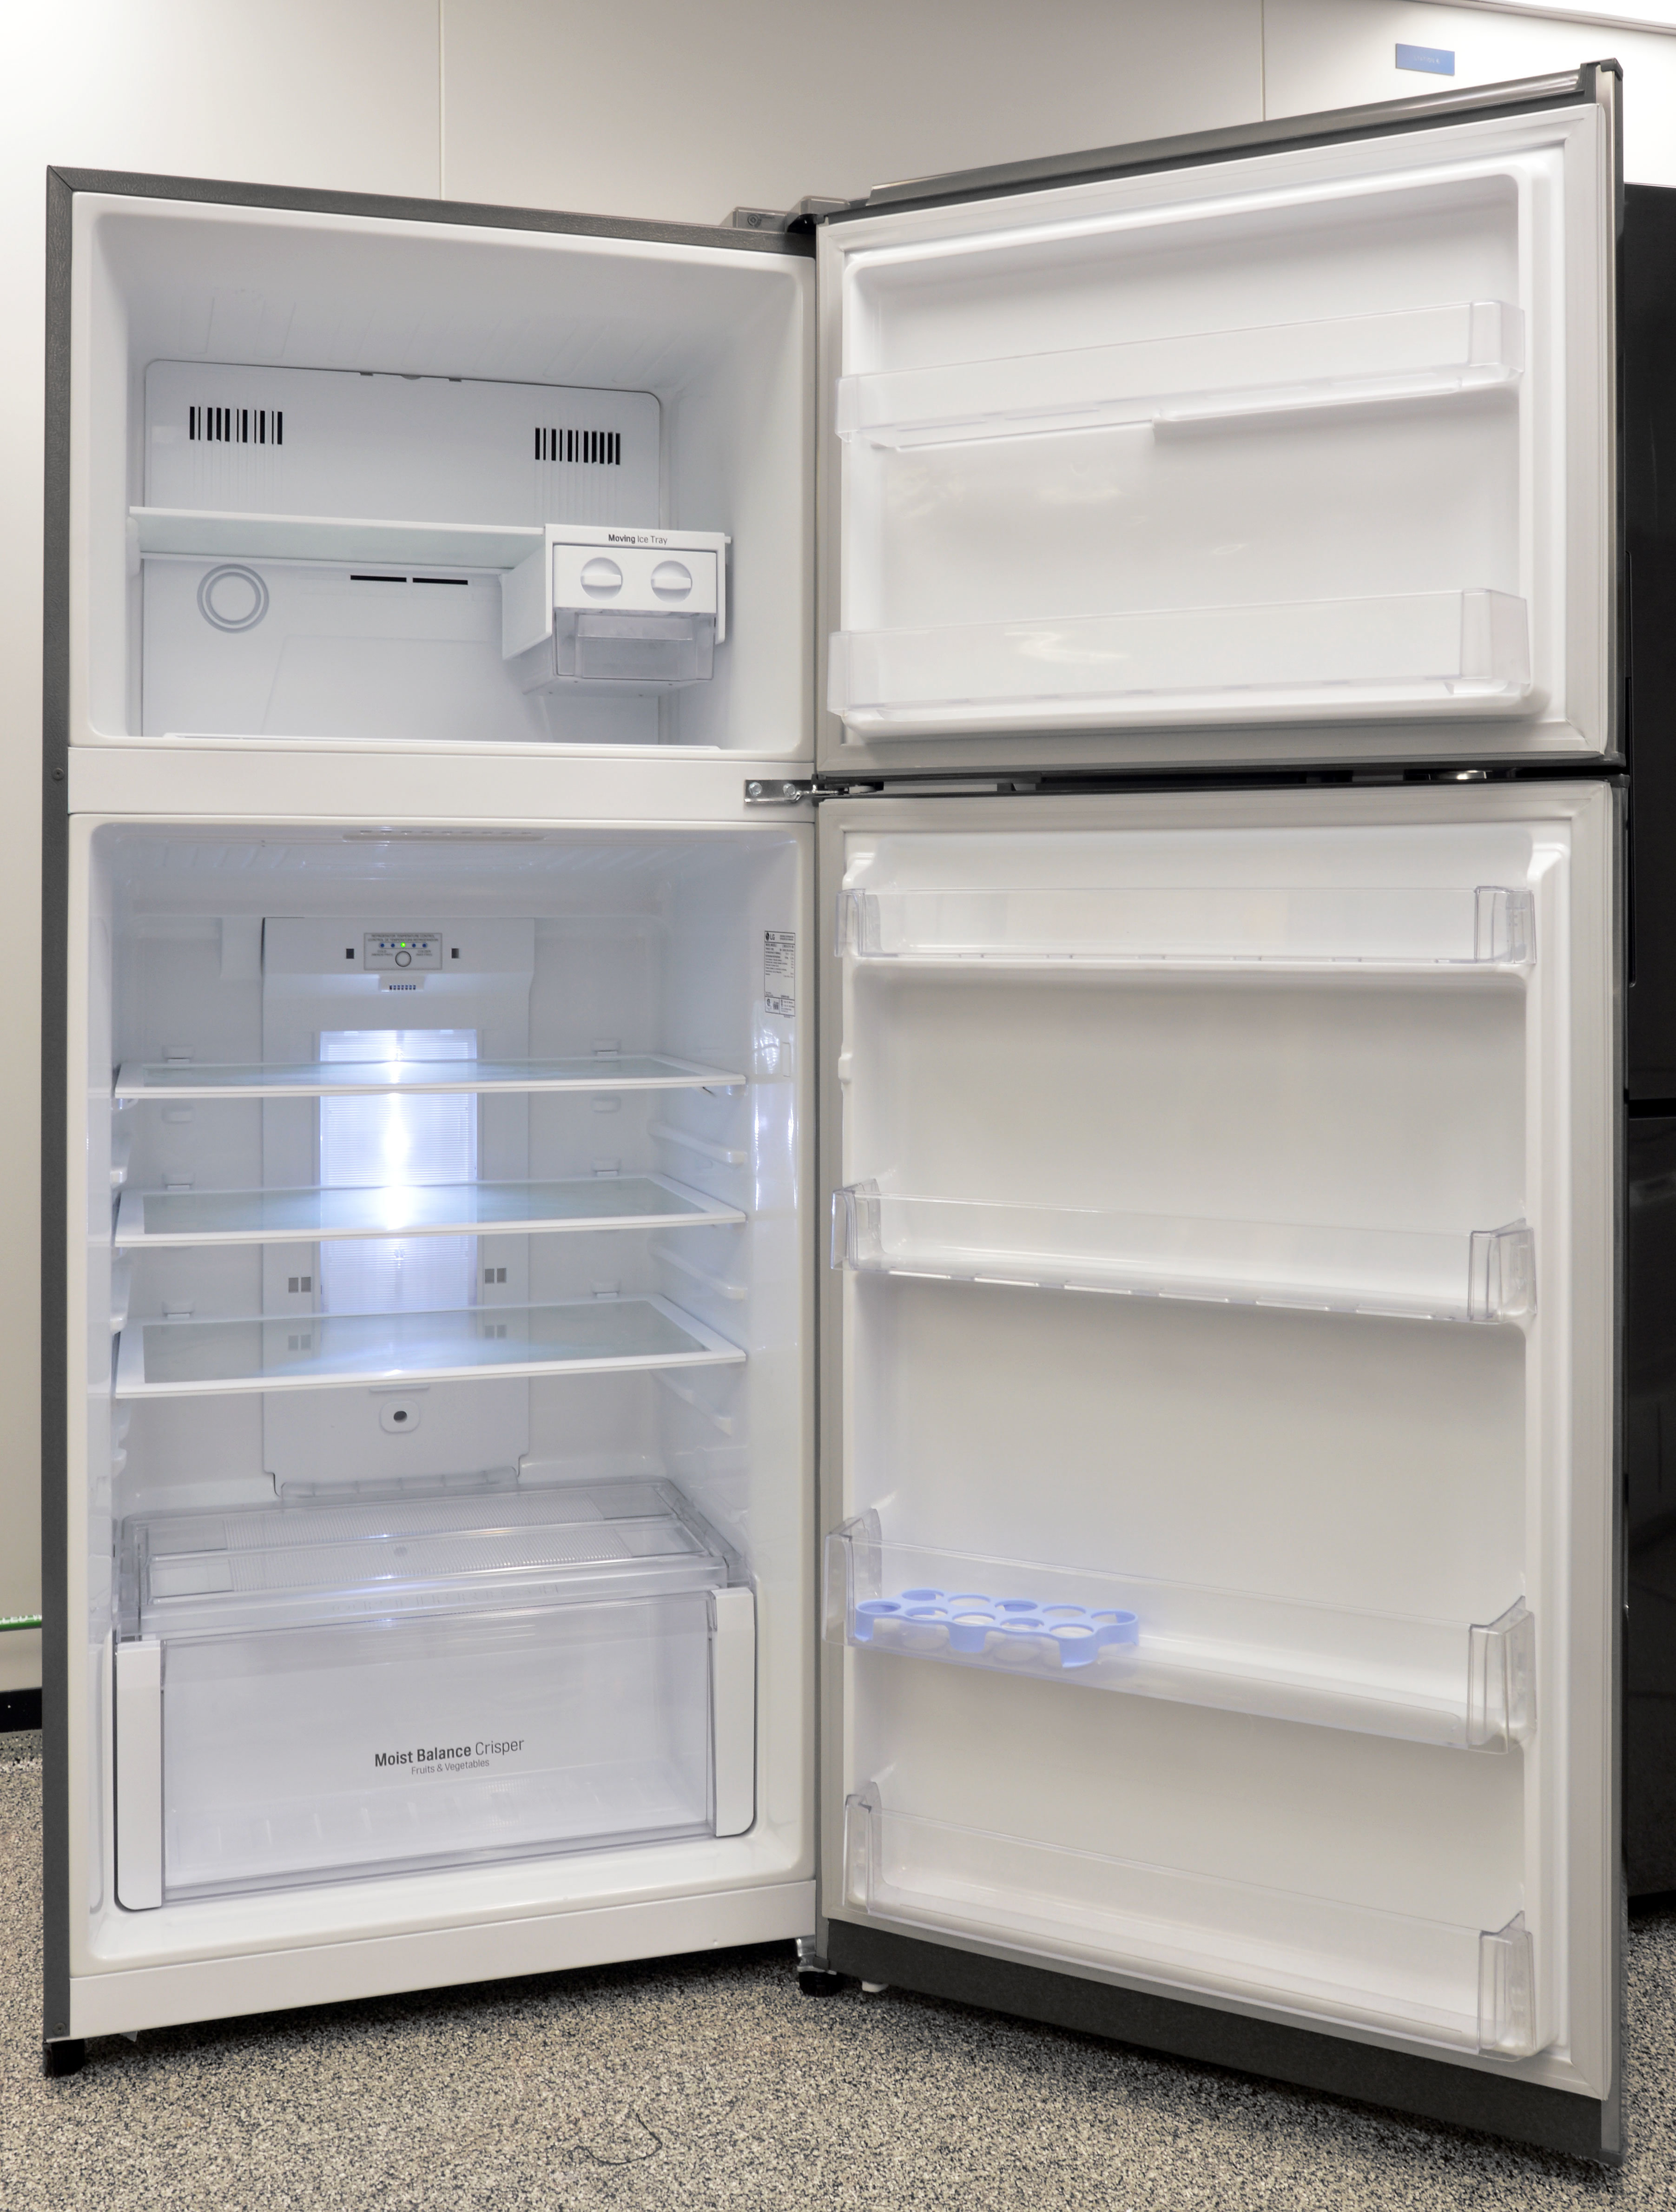 The clean white interior of the LG LTNS16121V's fridge isn't terribly large, but it makes the best use of the space it has.